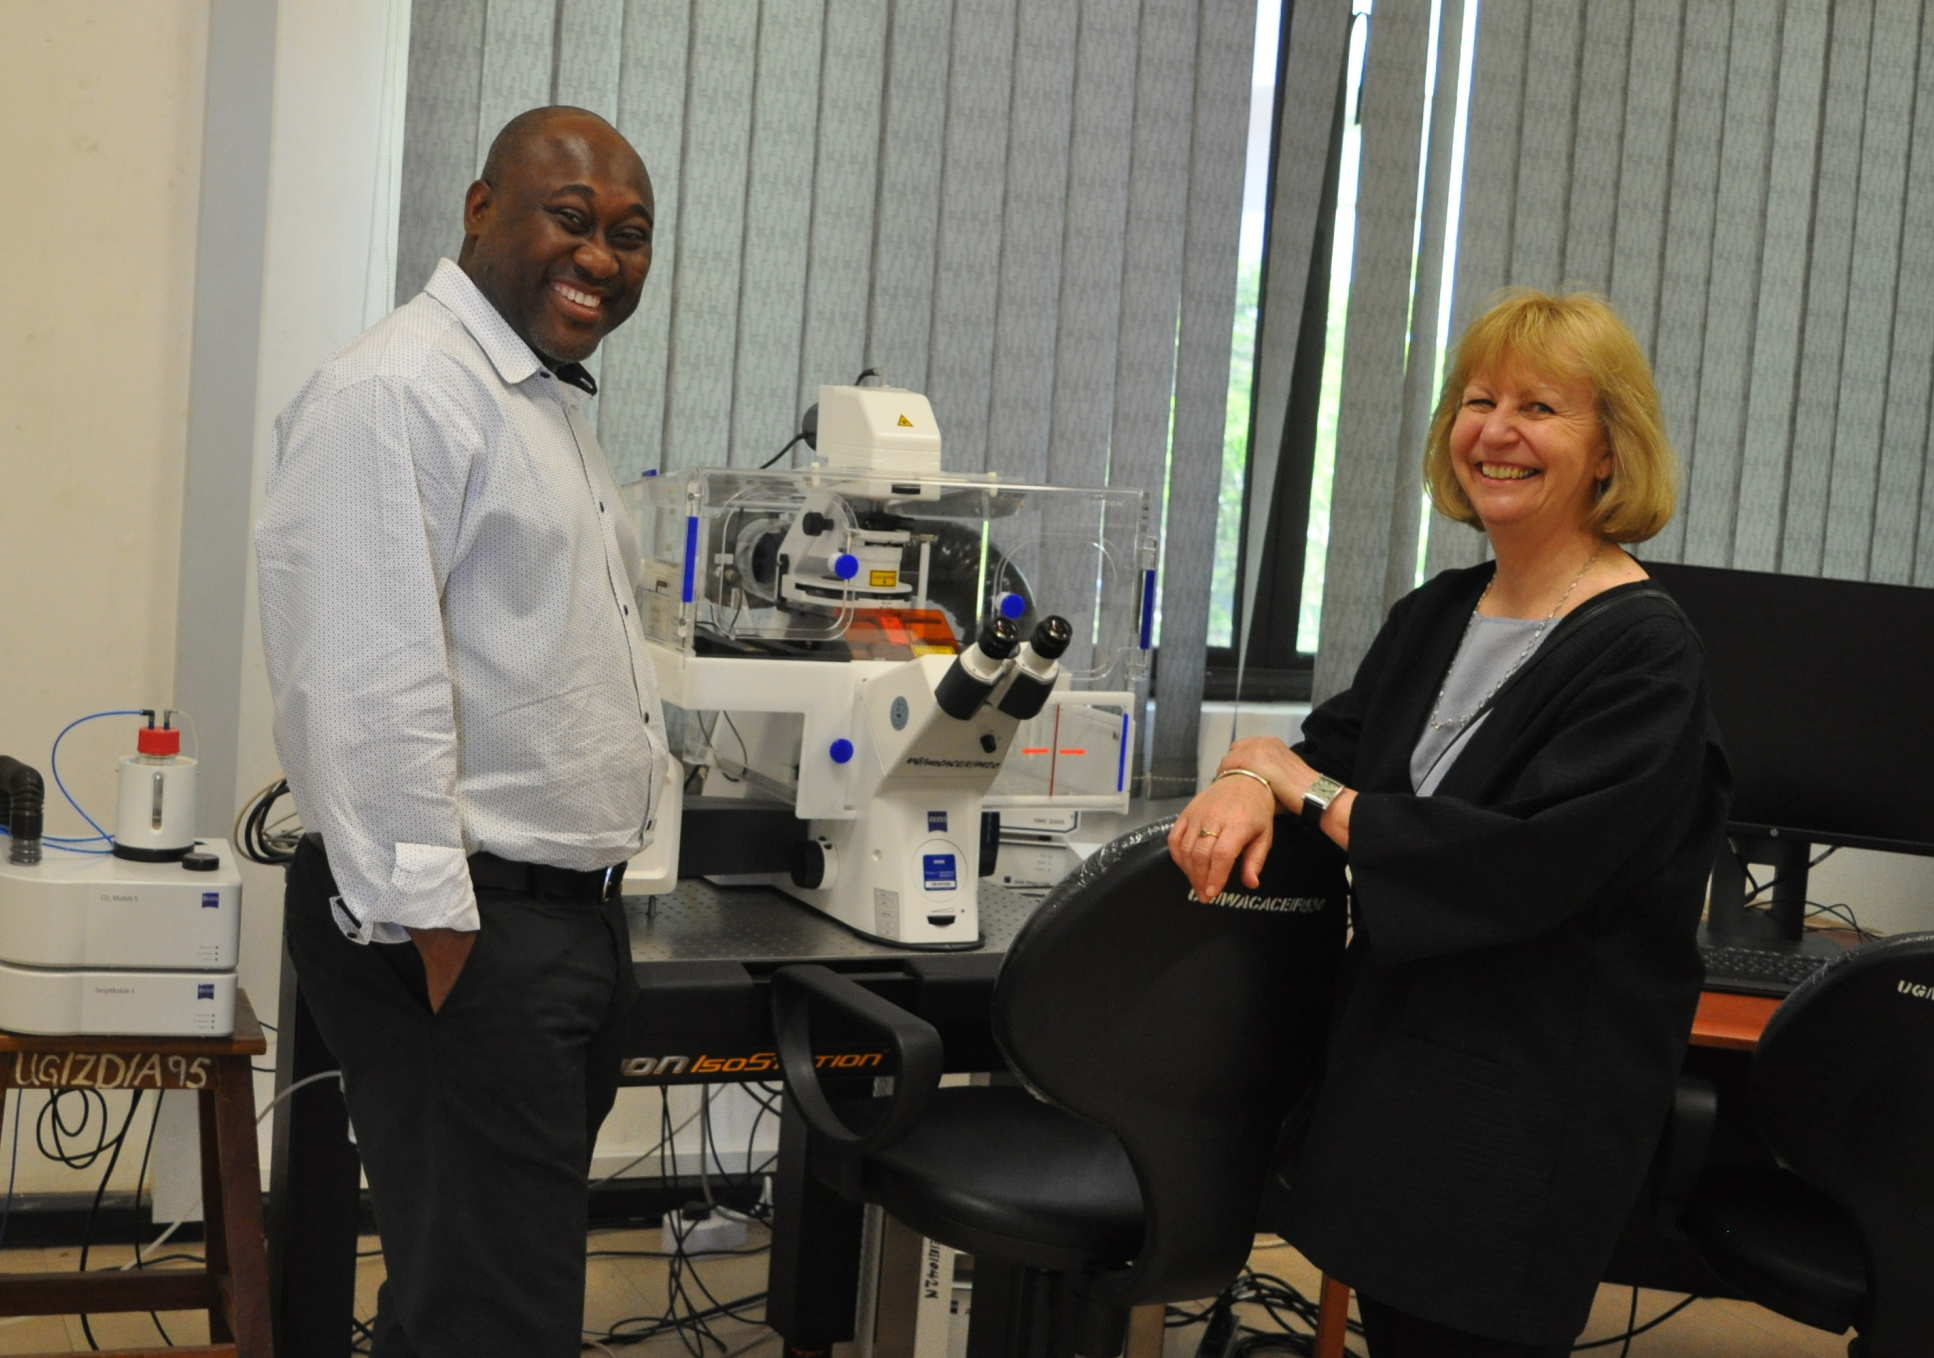 Professor Dallman discussed lab equipment with the Director of the West African Centre for Cell Biology of Infectious Pathogens at the University of Ghana